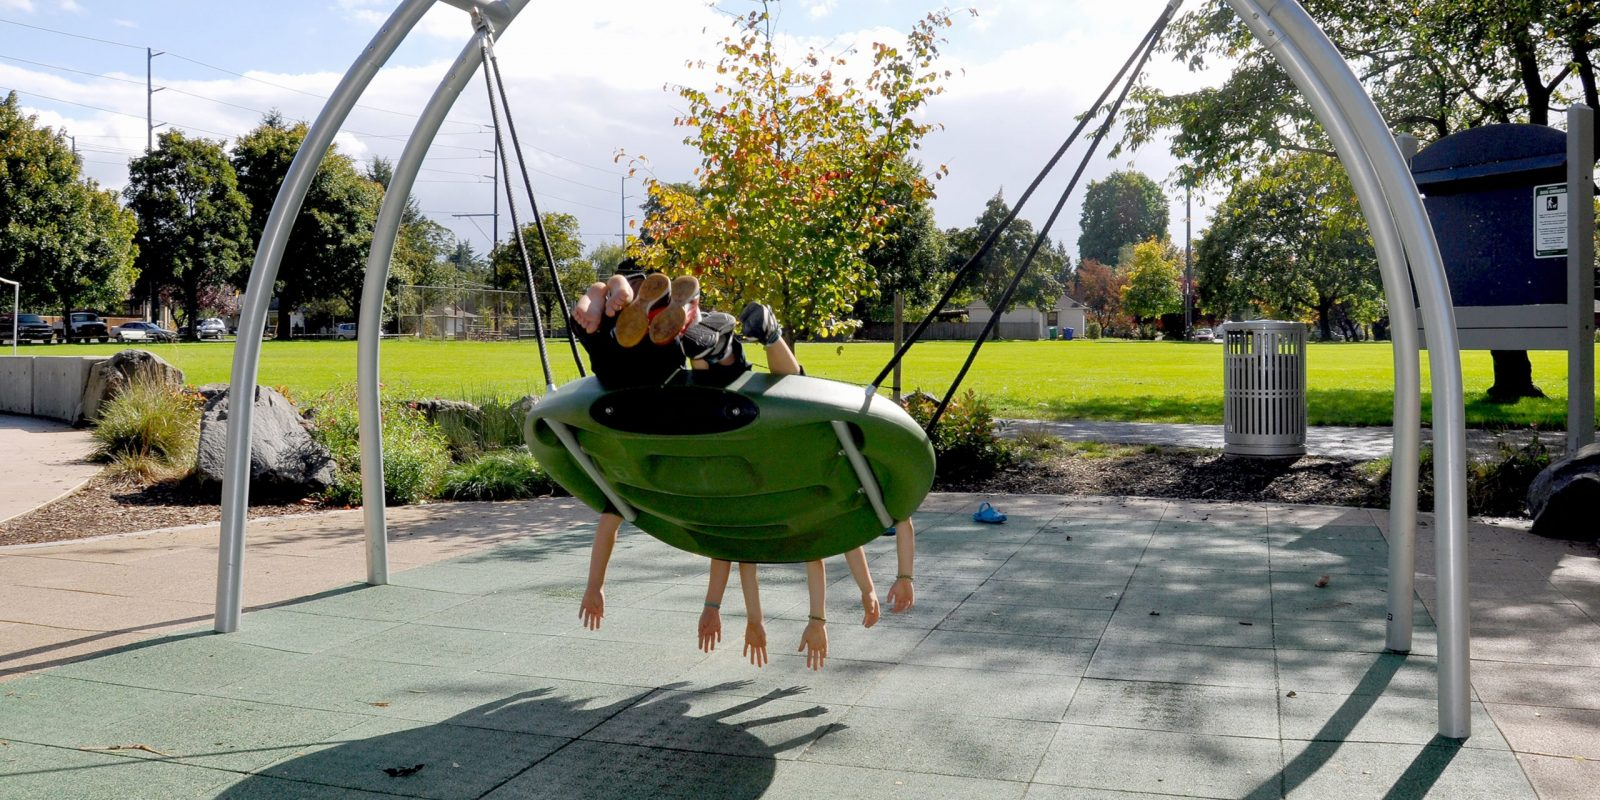 Three children enjoying an accessible multi-person swing.